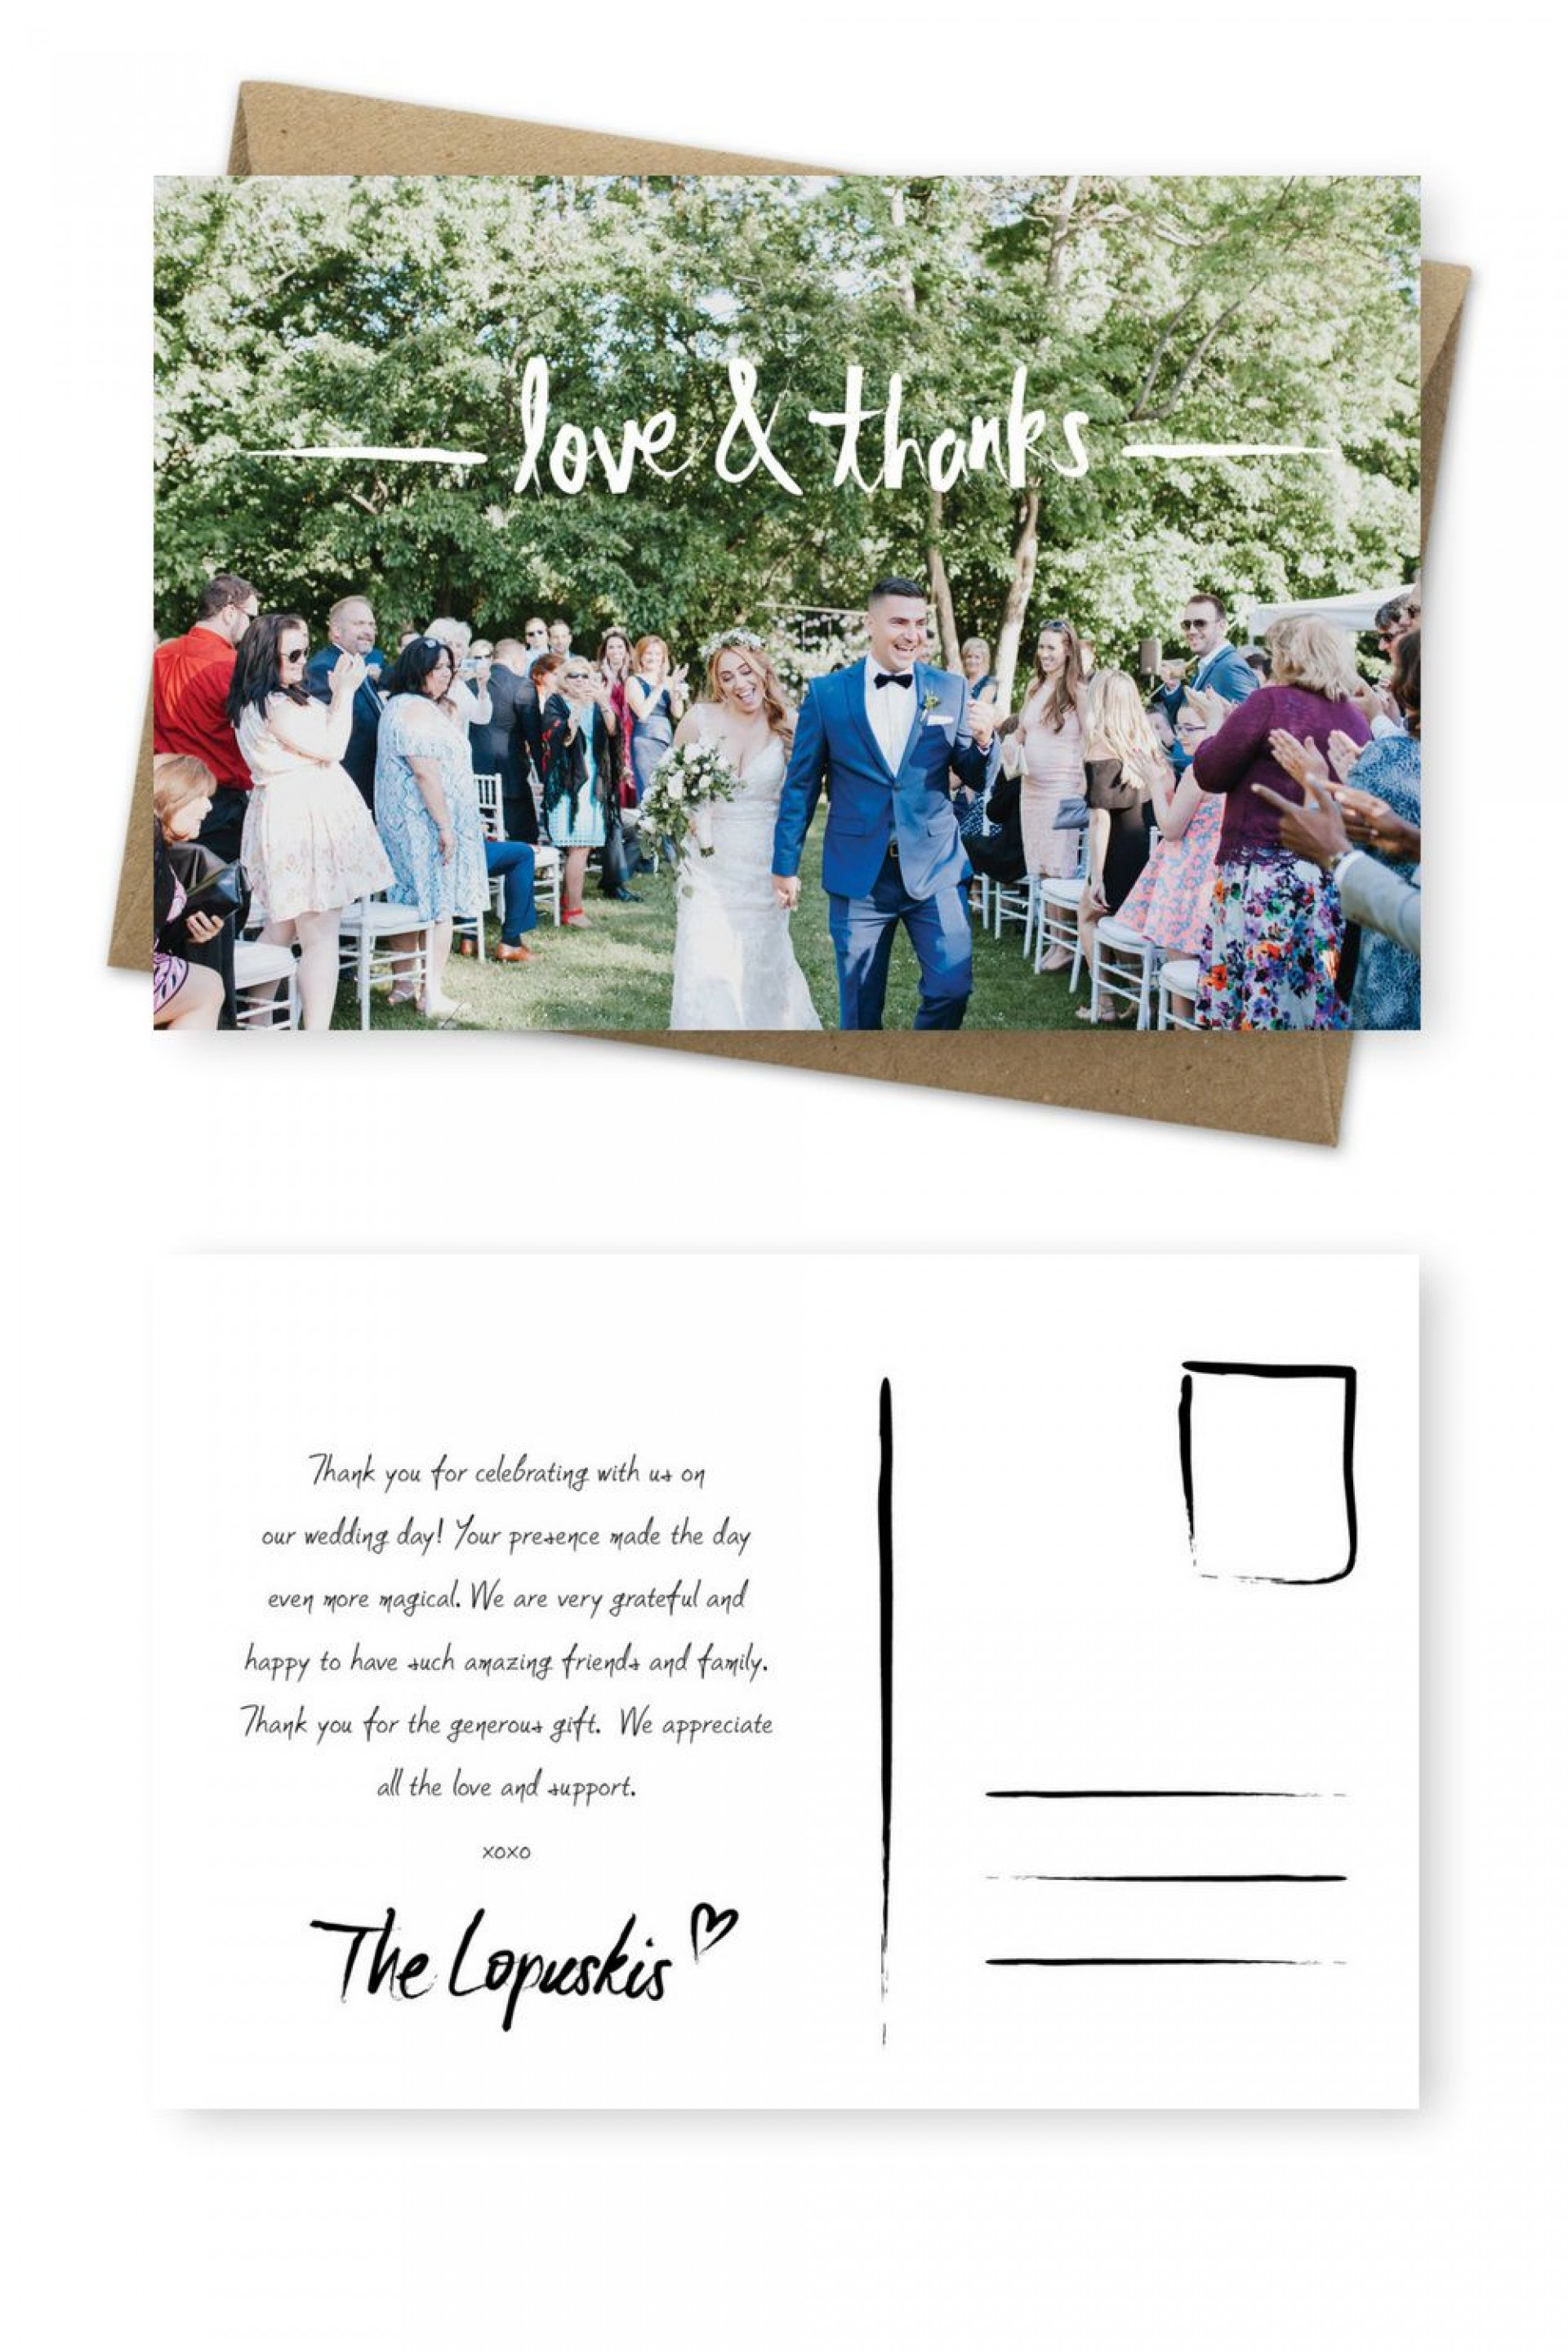 001 Unique Wedding Thank You Card Template Image  Message Sample Free Download Wording For Money1920